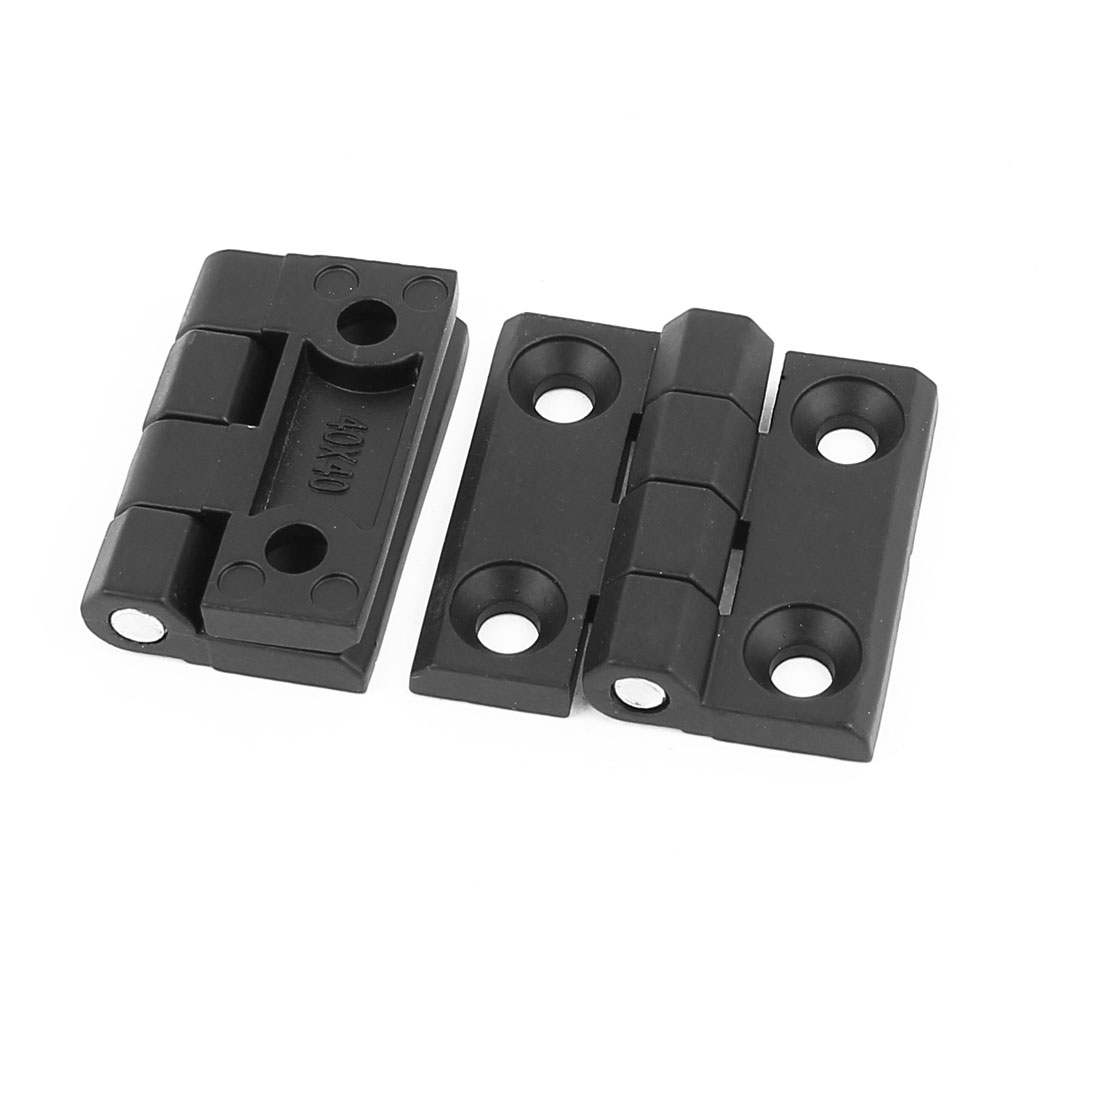 40mmx40mm 2 Leaves Reinforced Zinc Plated Door Bearing Butt Hinge Black 2pcs